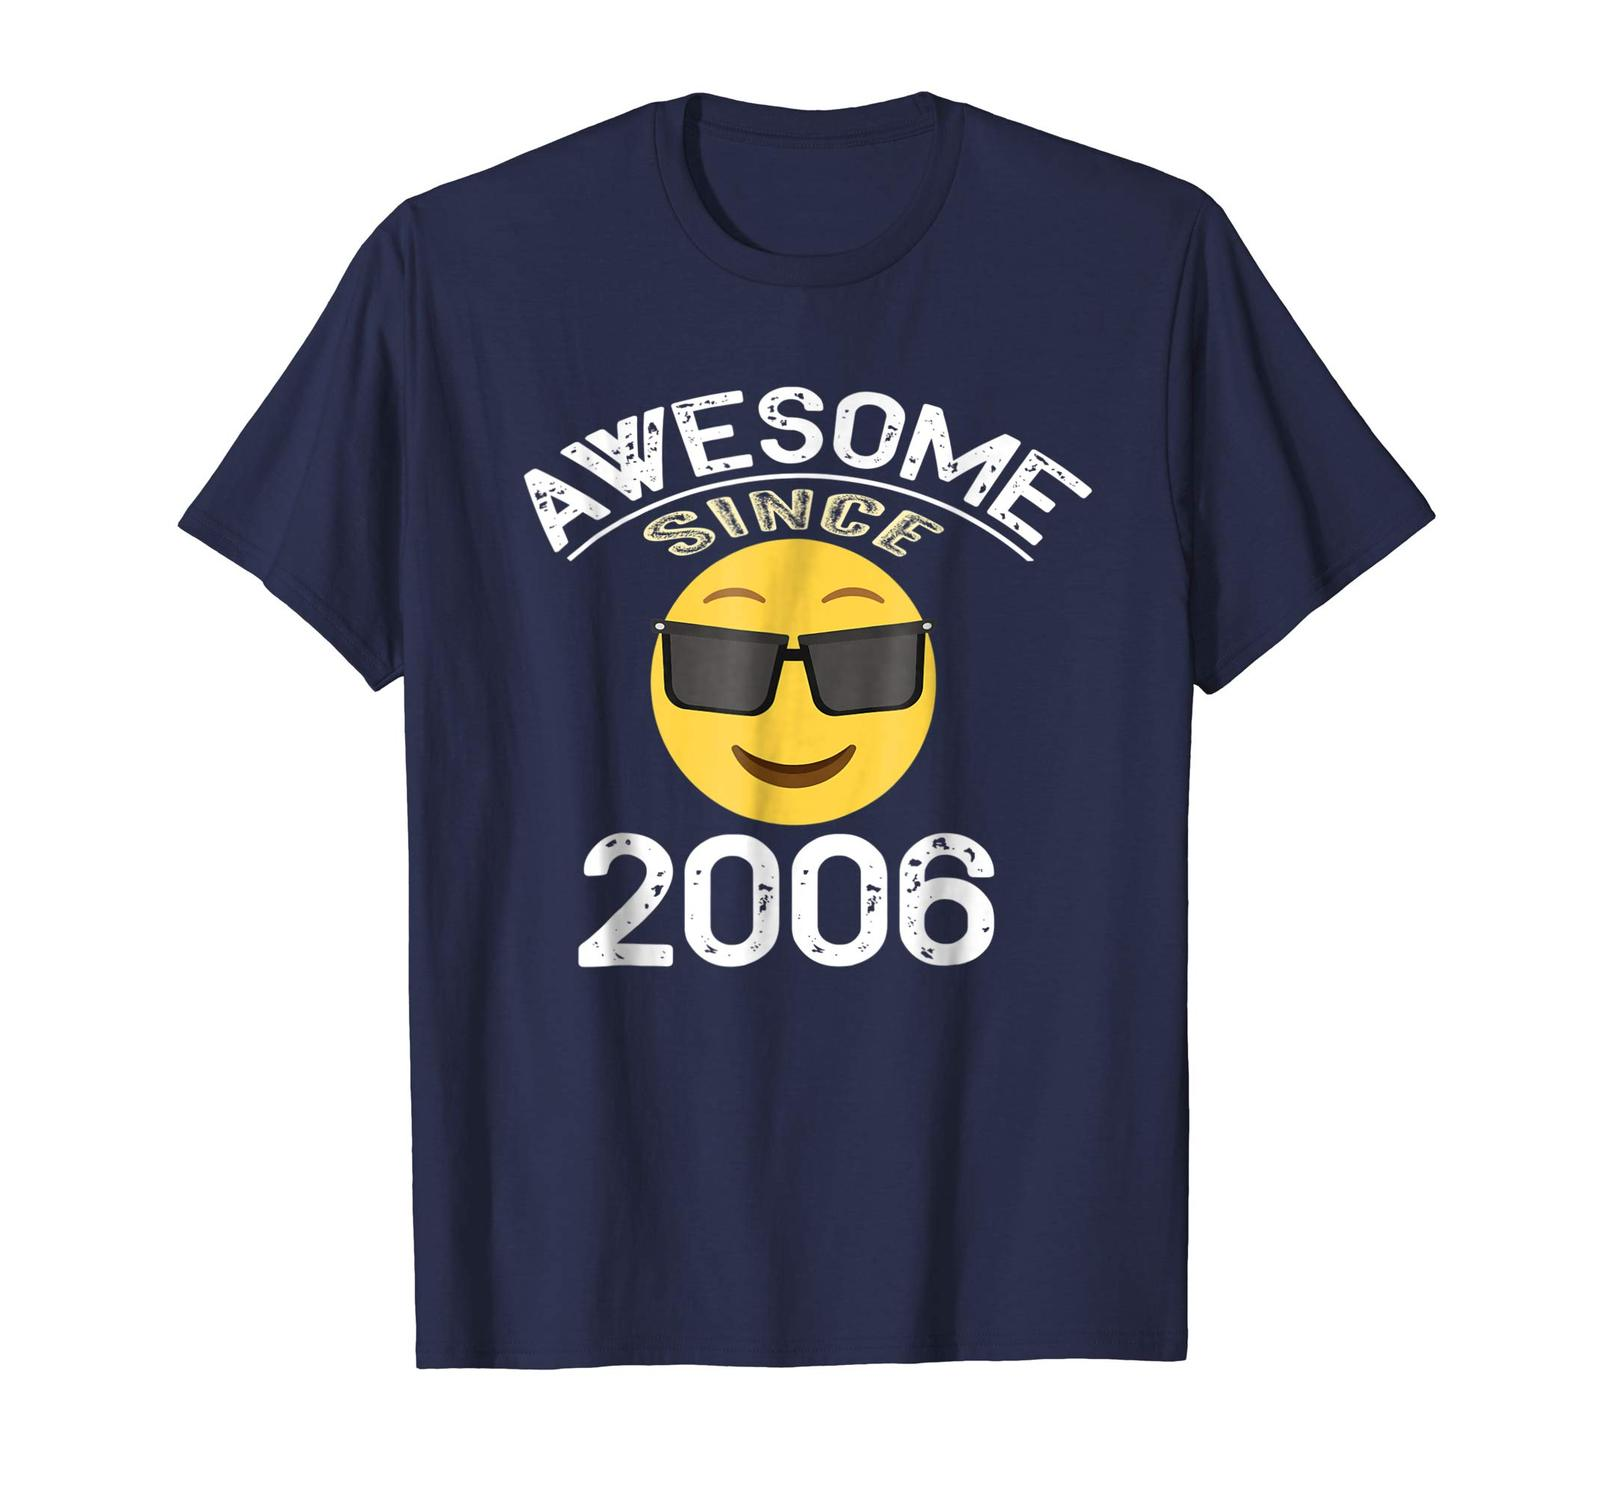 Primary image for Brother Shirts - Awesome Since 2006 Emoji Shirt - 12nd Birthday Gift Tee Men